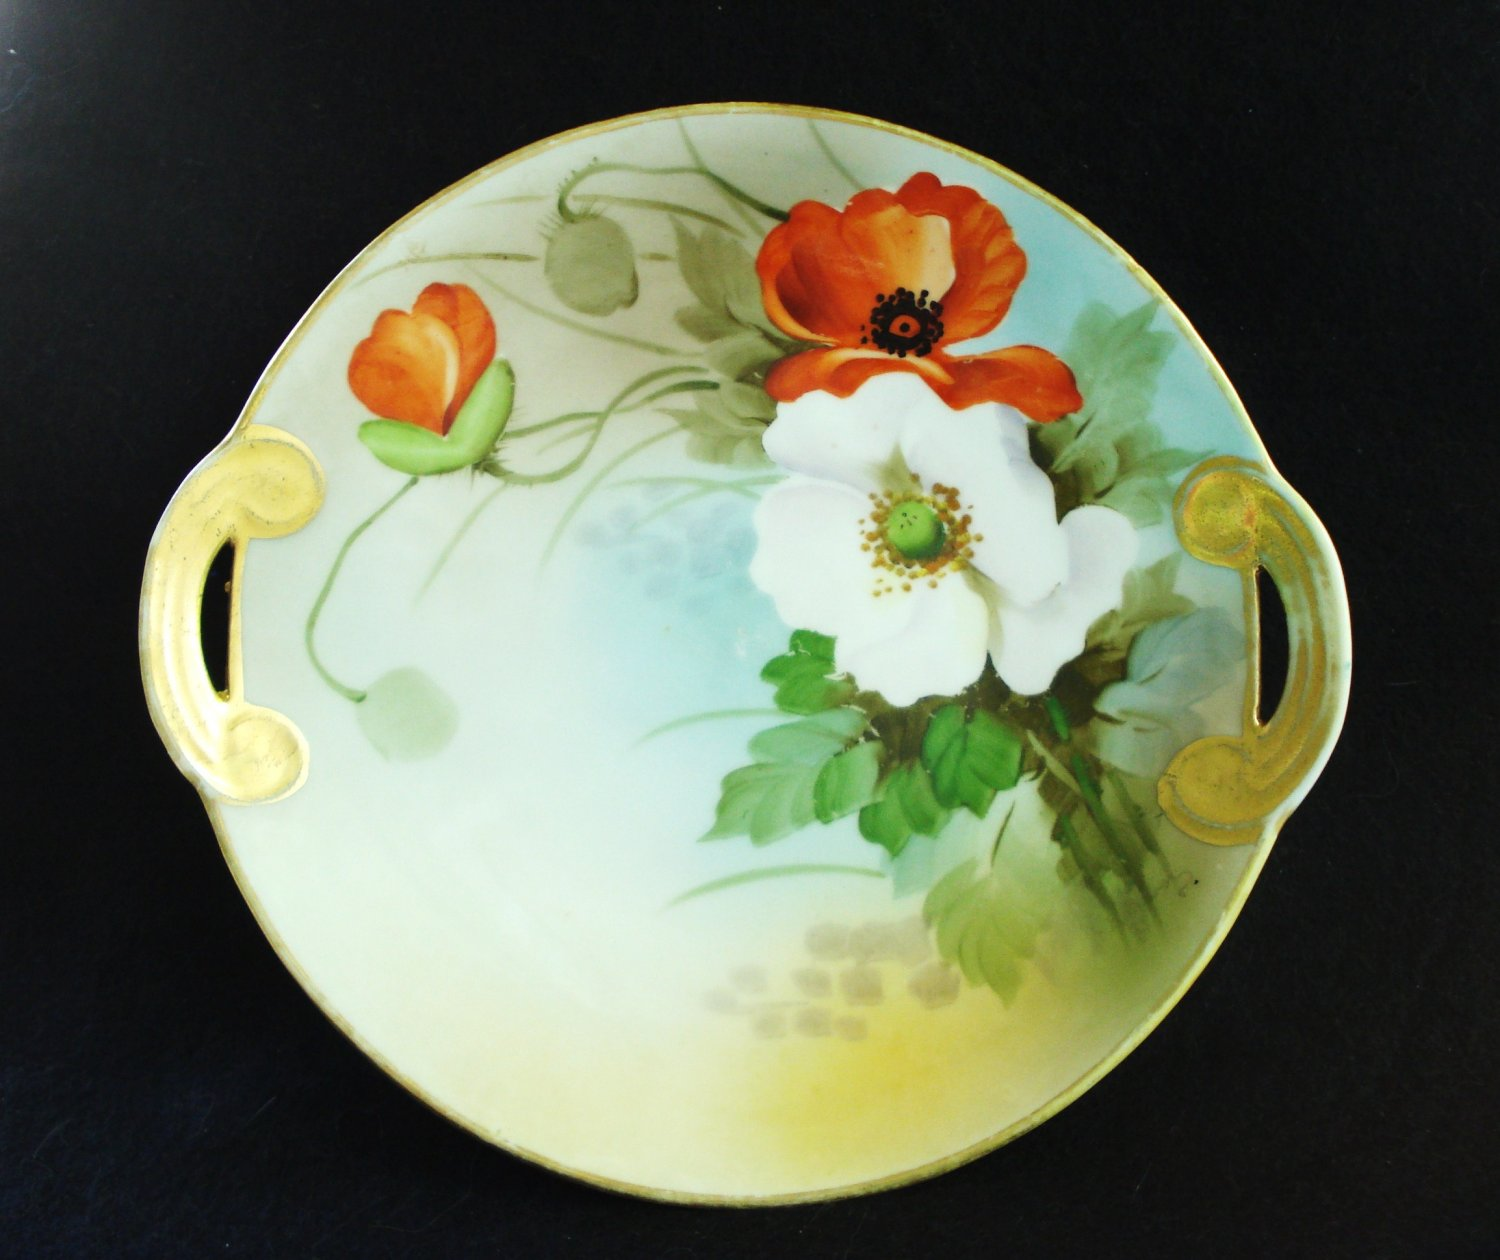 Lost 4-13-16 Nippon Morimura anemone porcelain plate with handles antique hc2953